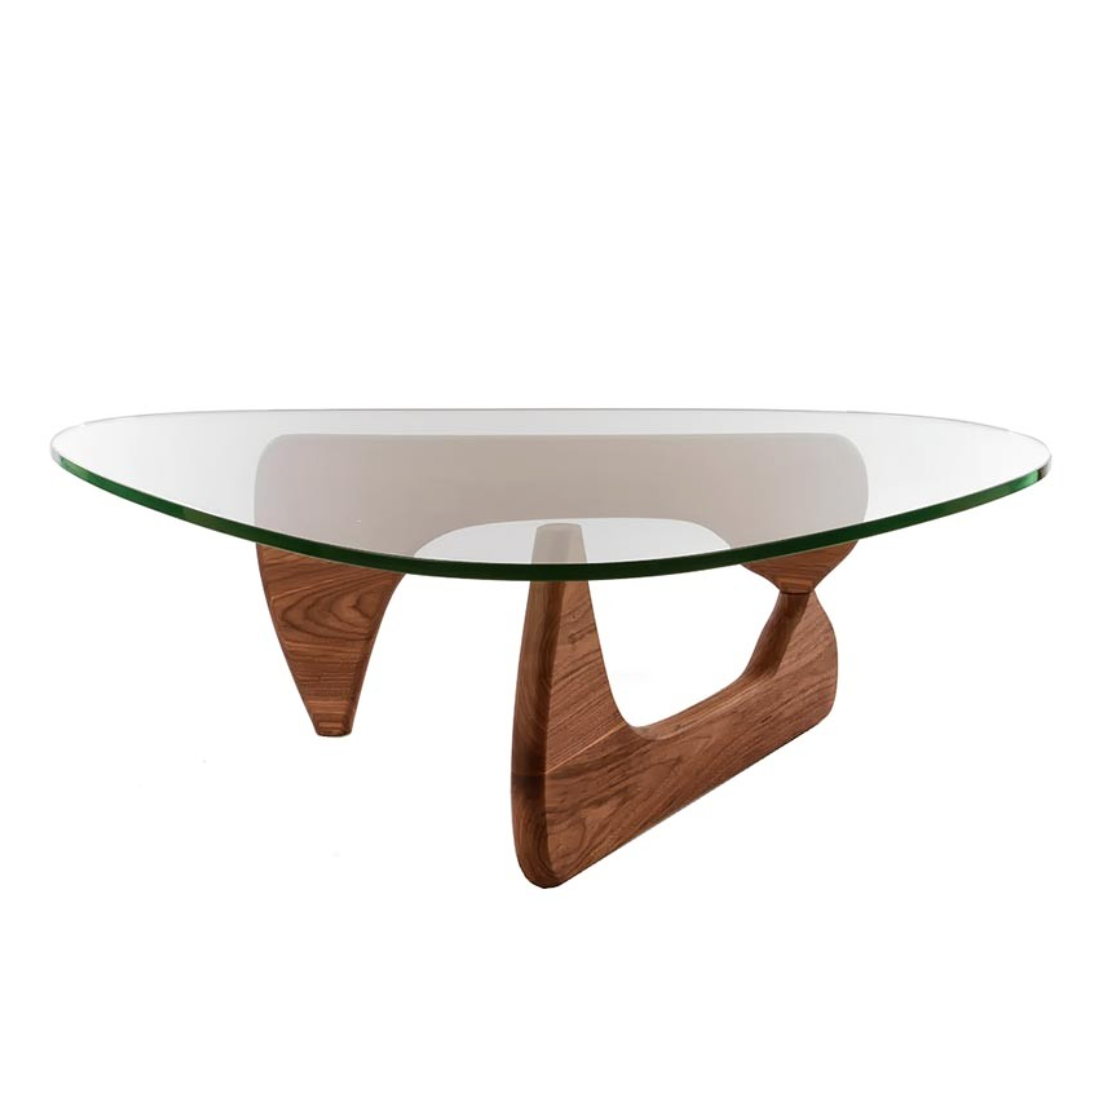 Charmant Noguchi Coffee Table